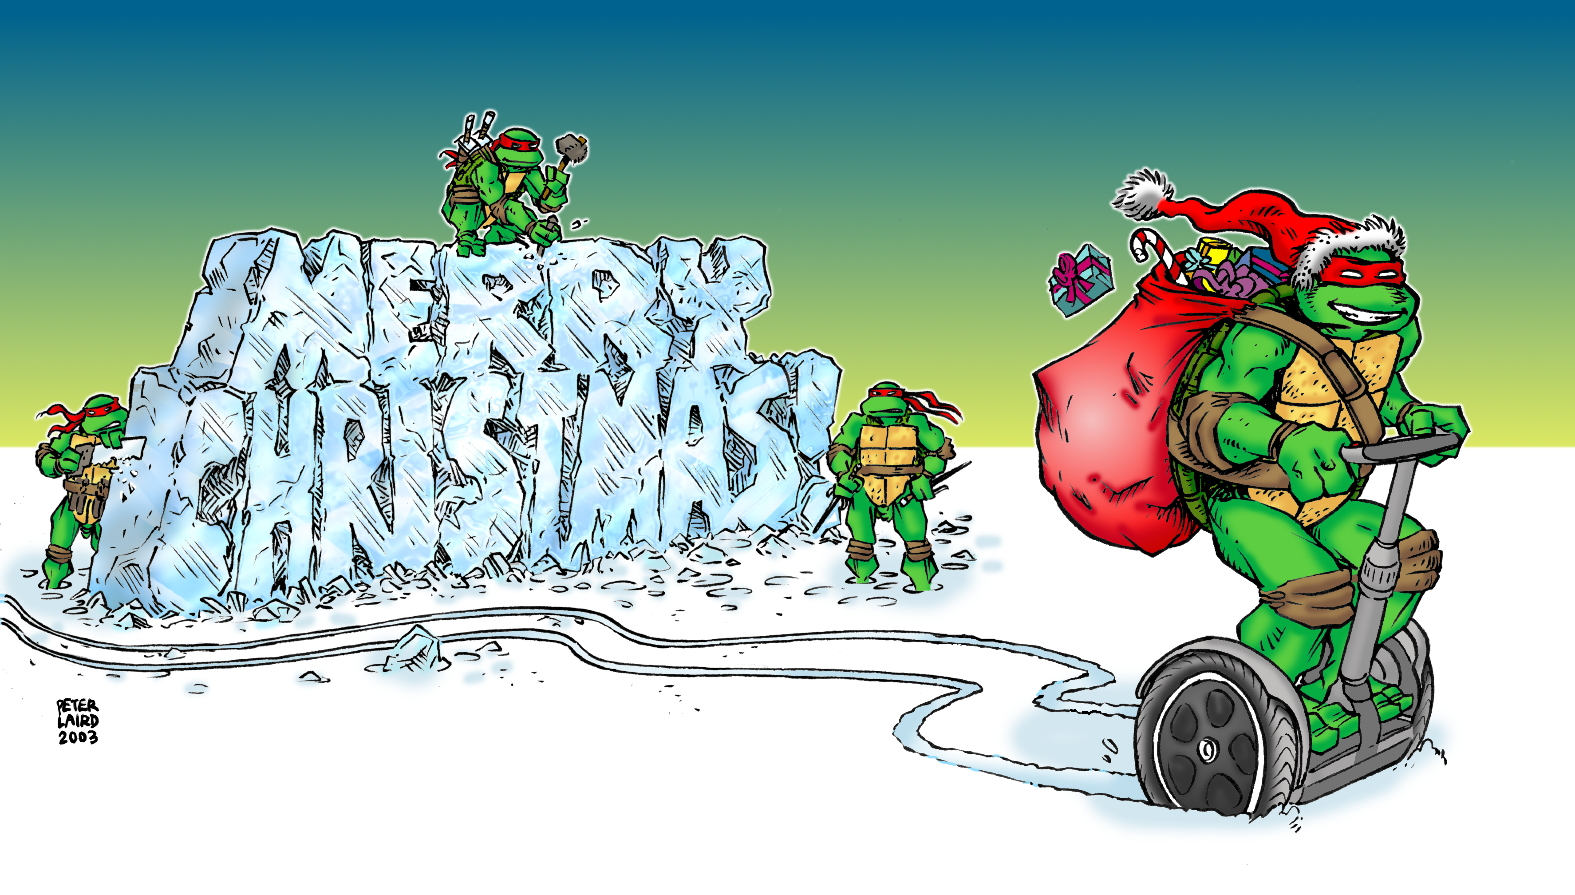 Peter lairds tmnt blog blast from the past 331 2003 christmas card blast from the past 331 2003 christmas card sciox Image collections